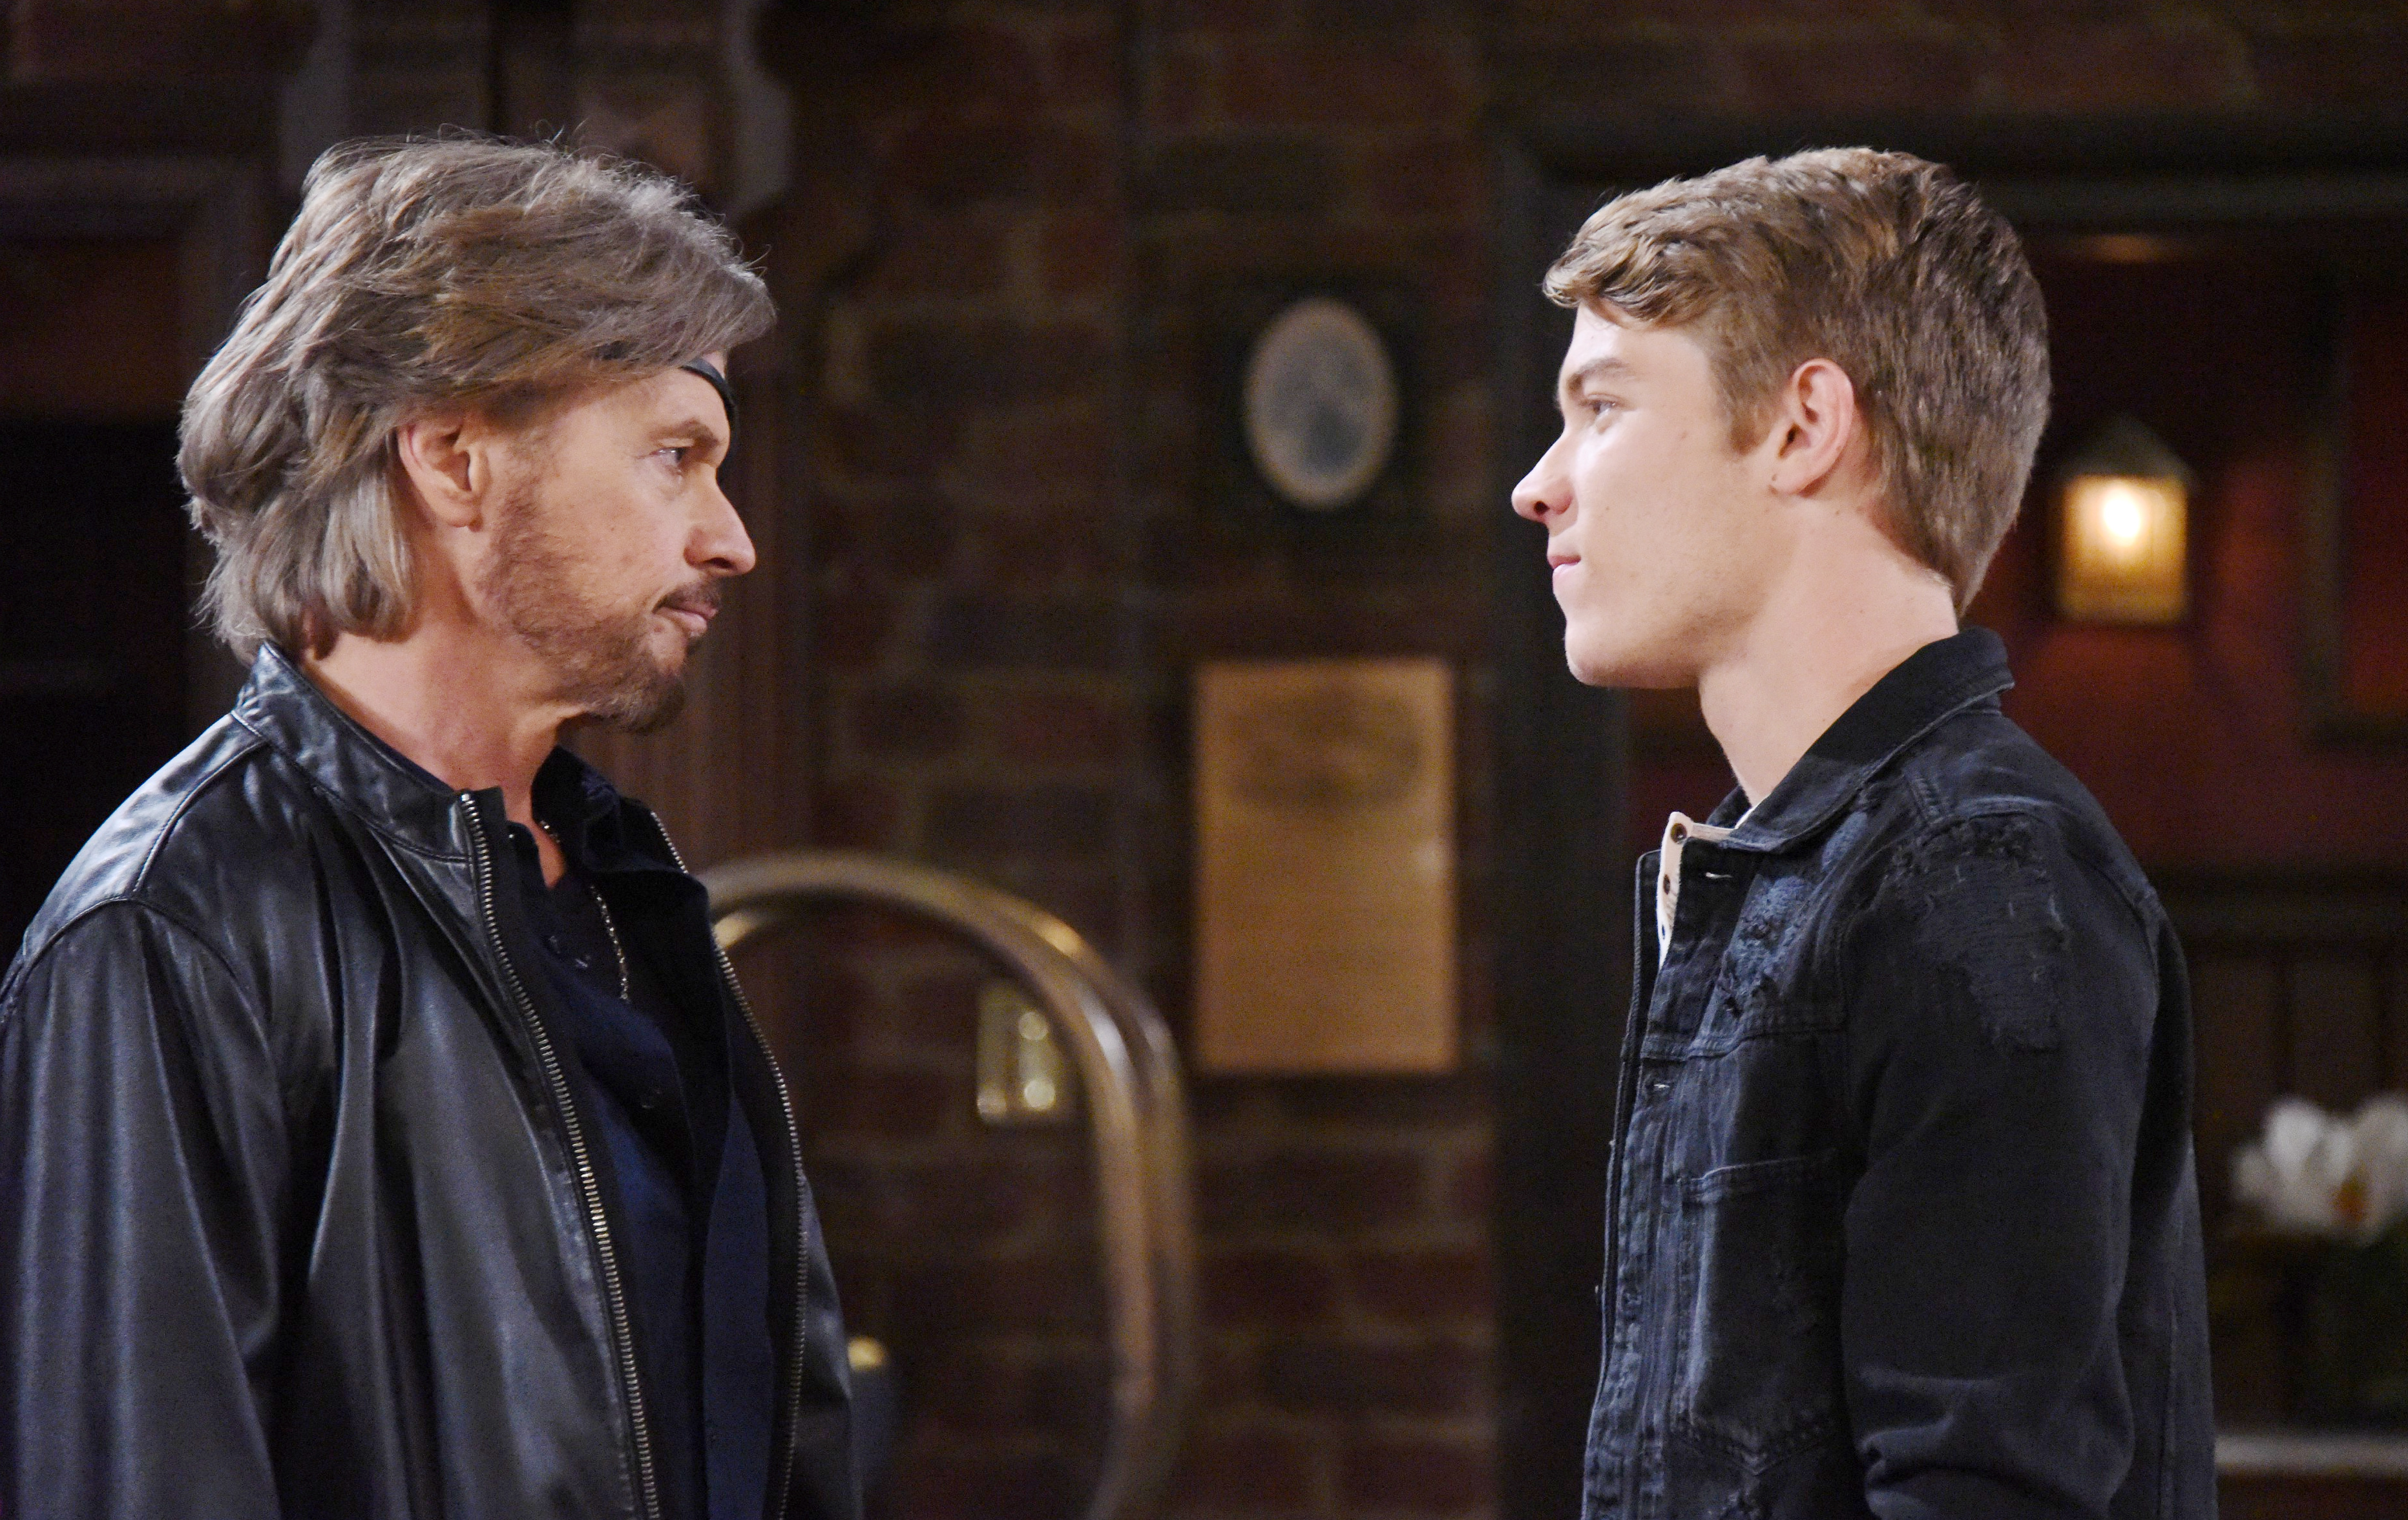 DOOL Spoilers: Tripp confides his growing affection for Claire to Steve.